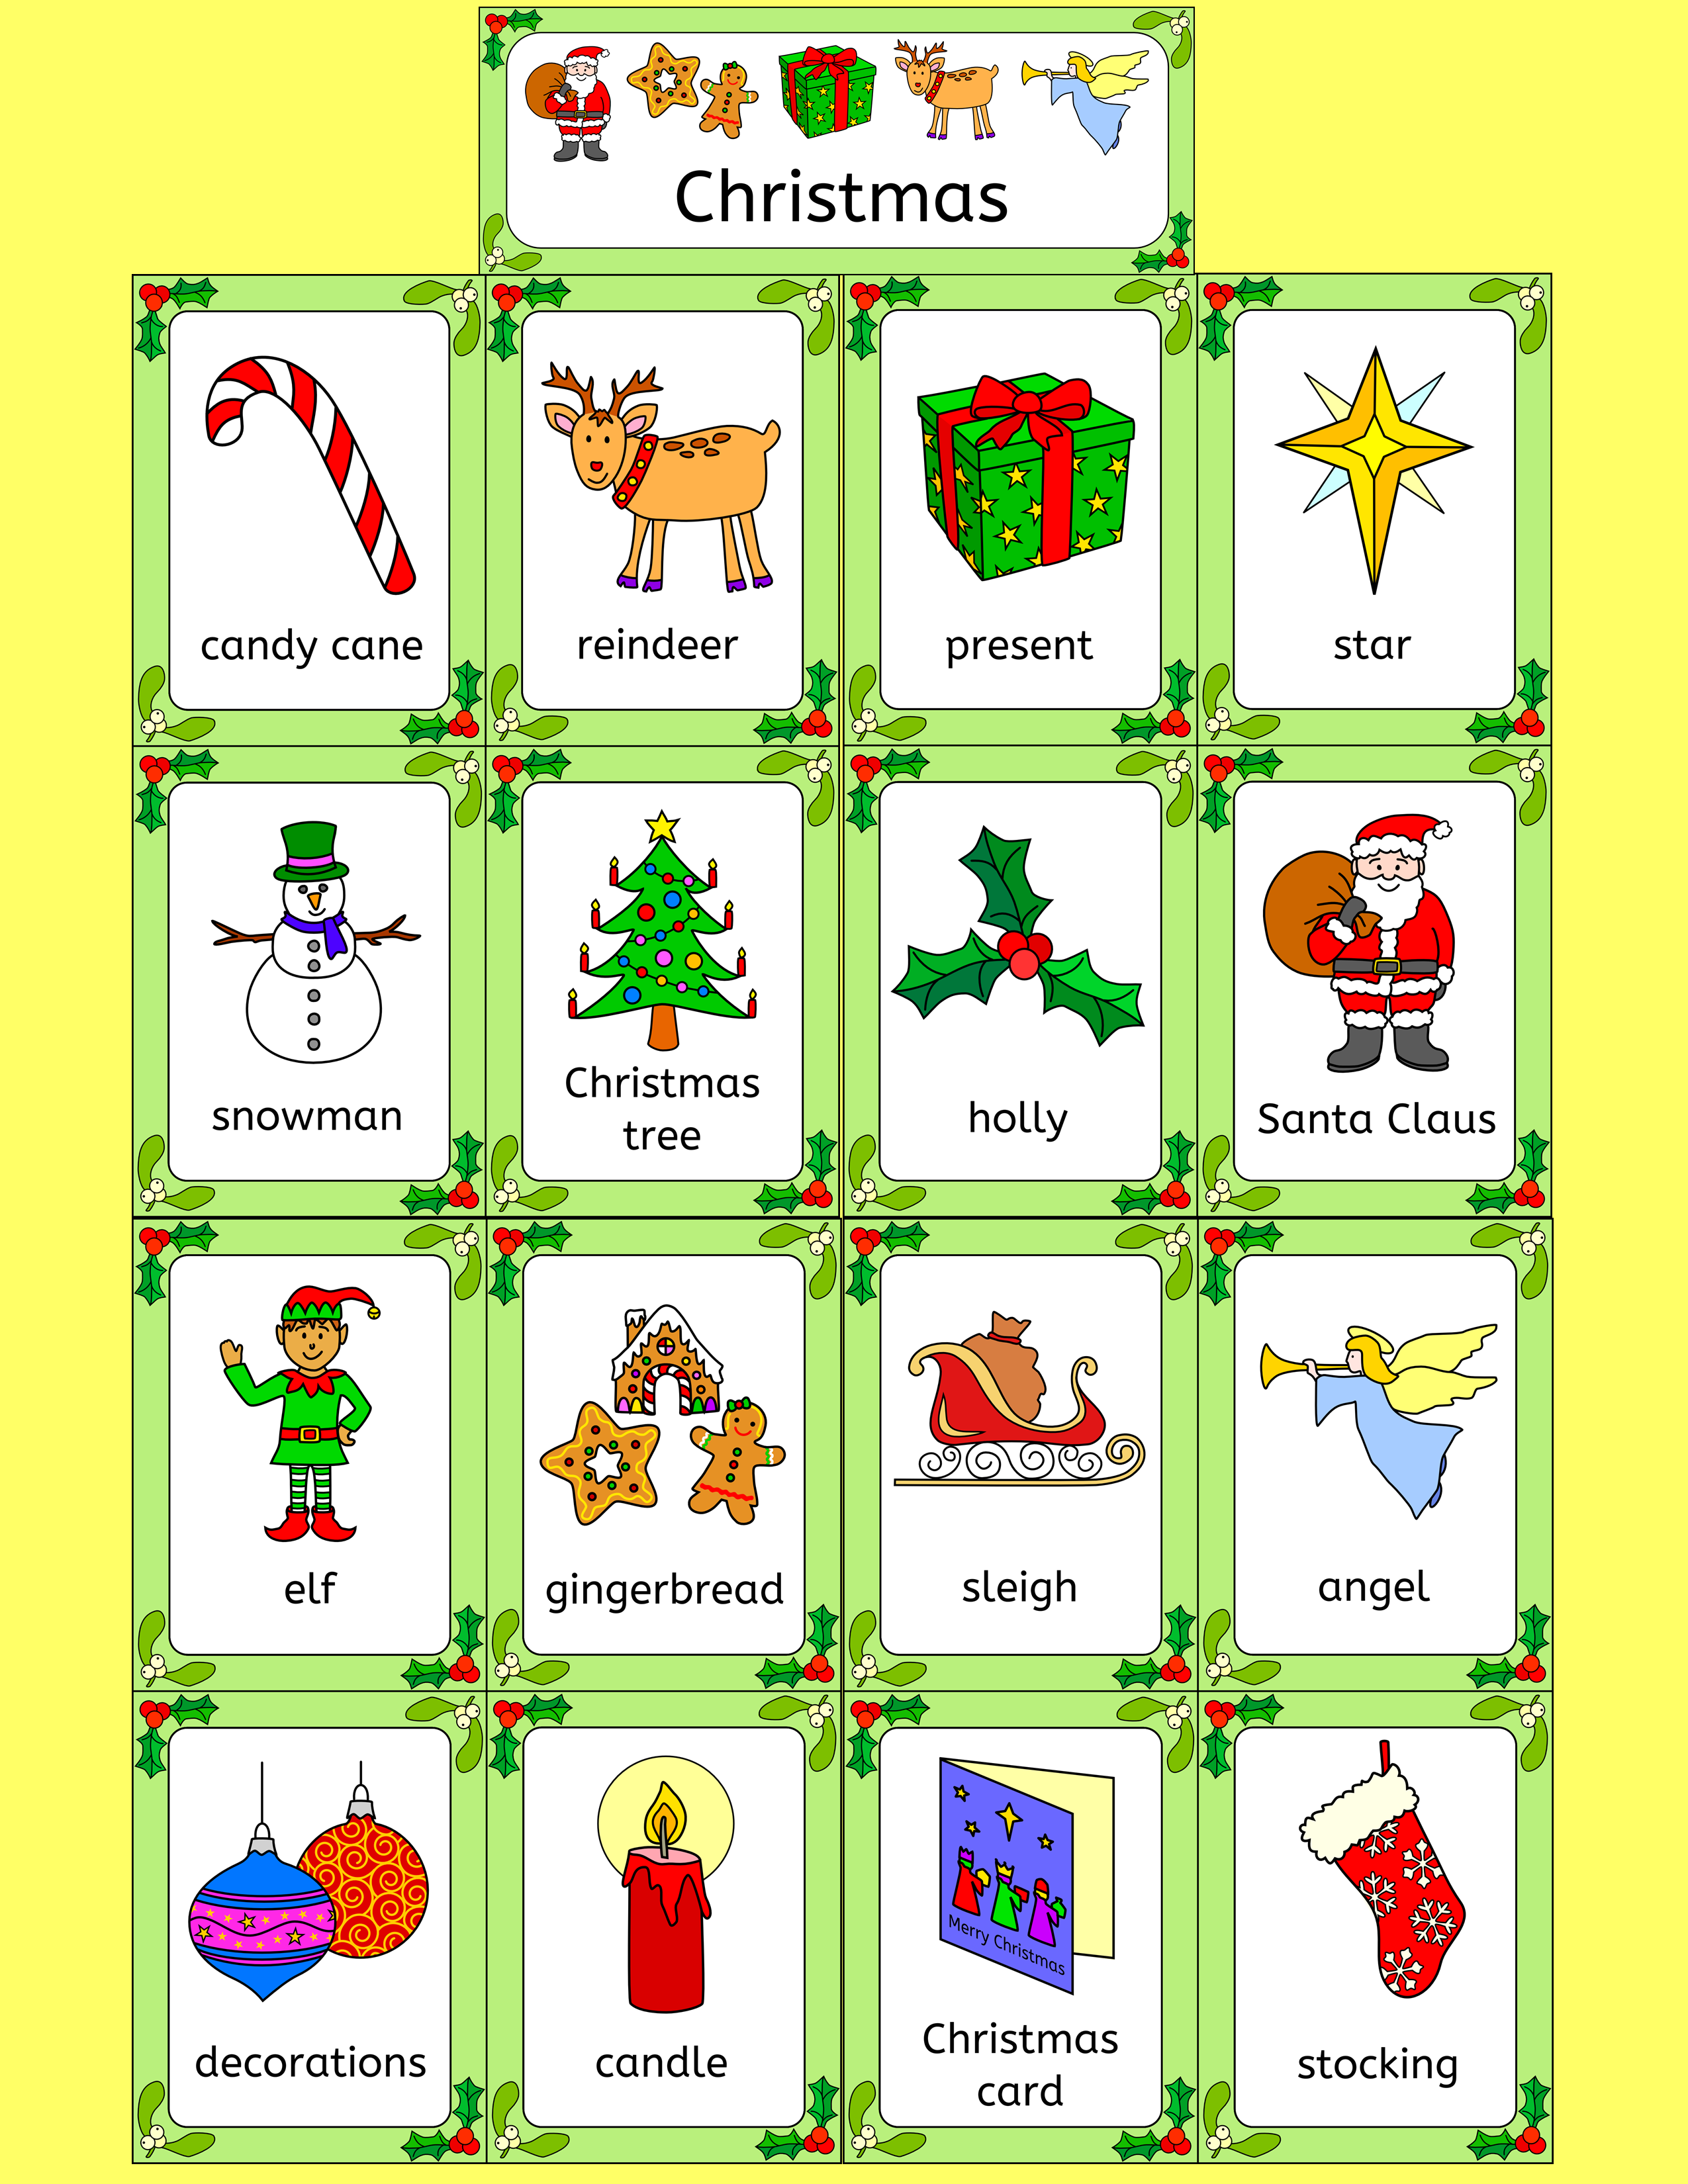 Fabulous Set Of Xmas Resources For The Efl Classroom Puzzles Games Activities Cards Gift English Vocabulary Games Vocabulary Games Vocabulary Activities